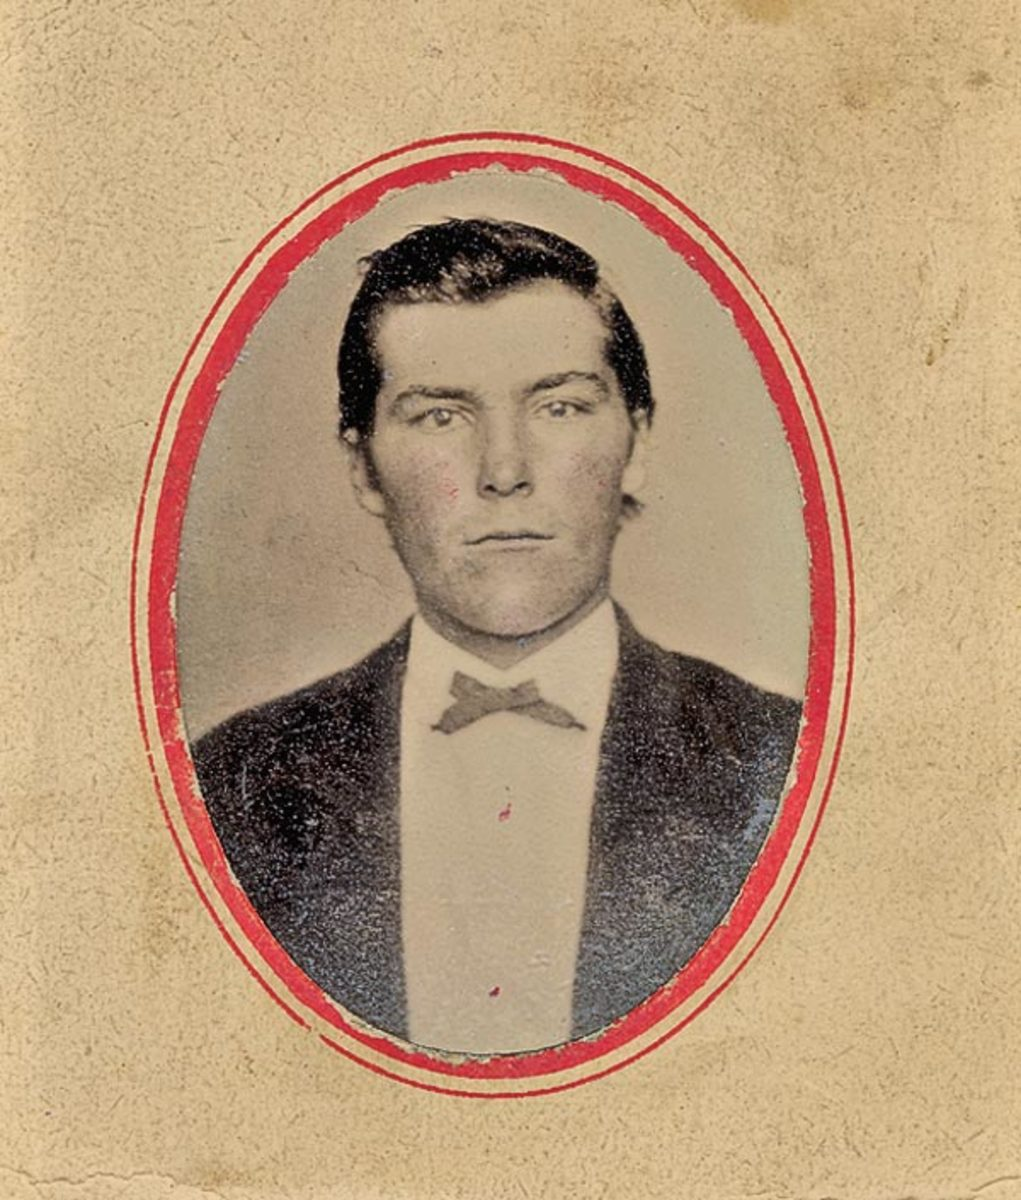 John Wesley Hardin was wanted by the law almost his entire life.  He was known as one of the deadliest and most dangerous killers alive, having killed 27 men by the time he was 18 years old.